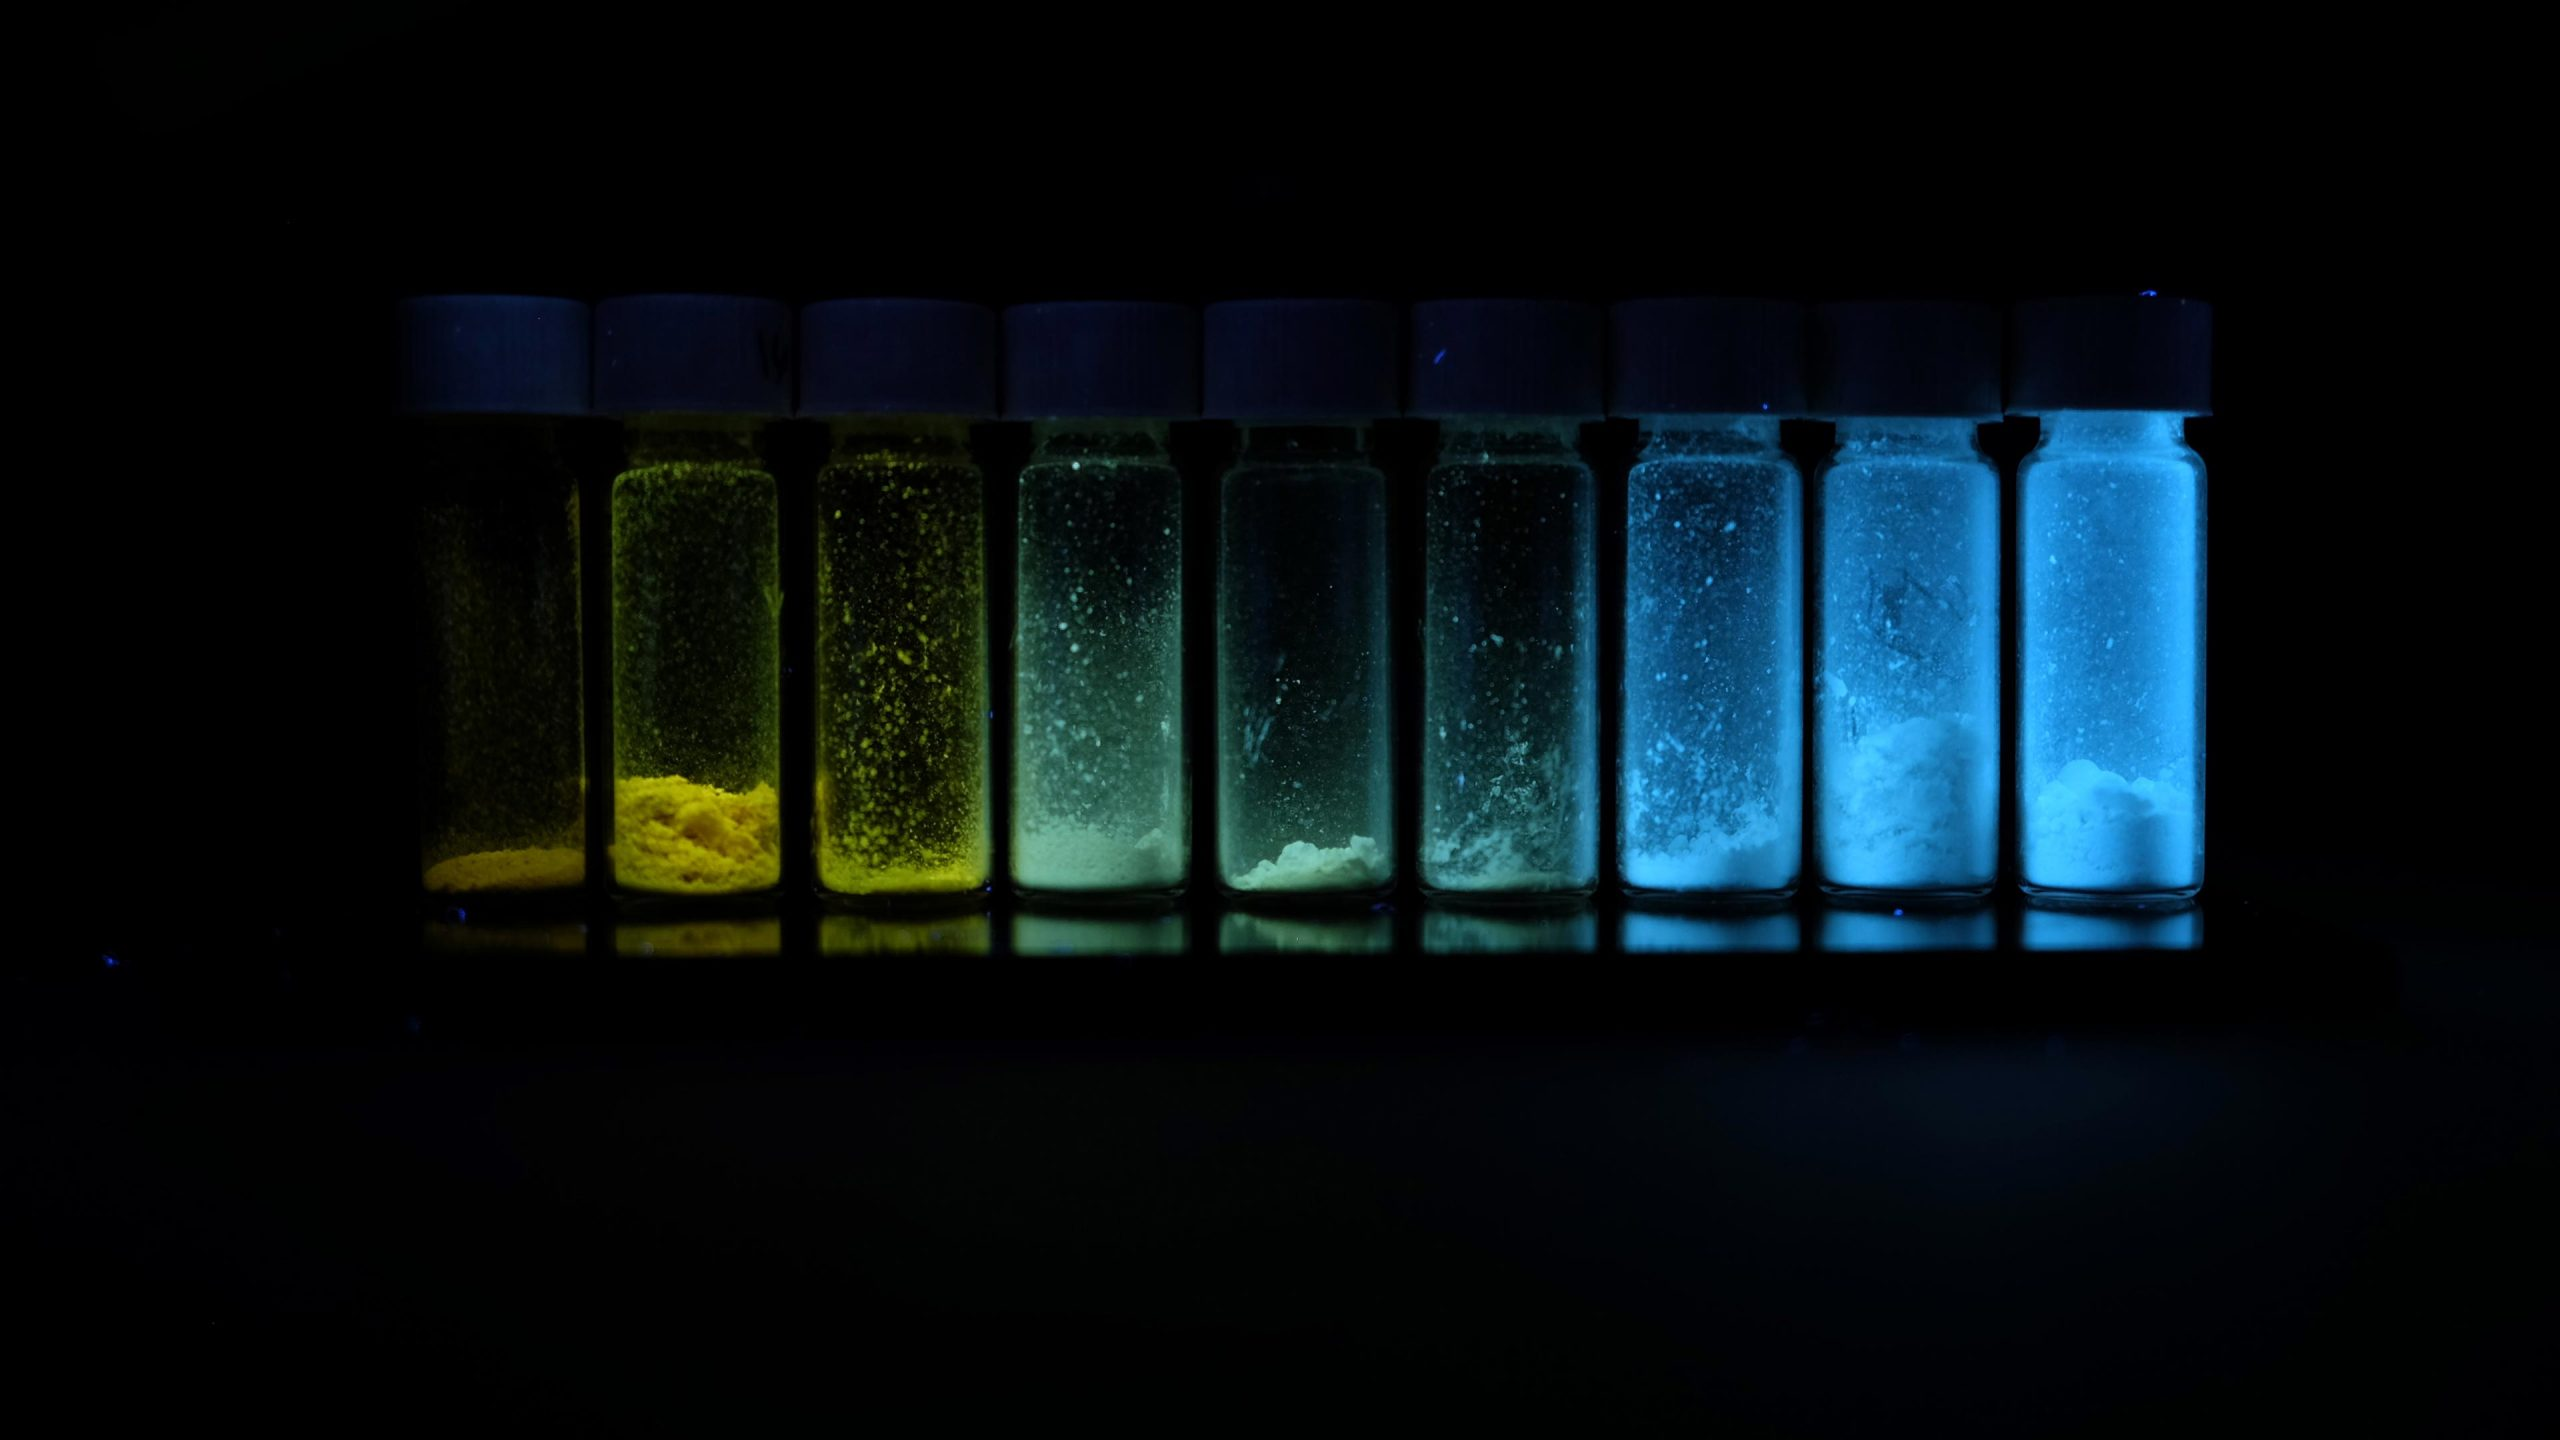 Polymer Fluorescence: Chain Length Determines Molecular Color